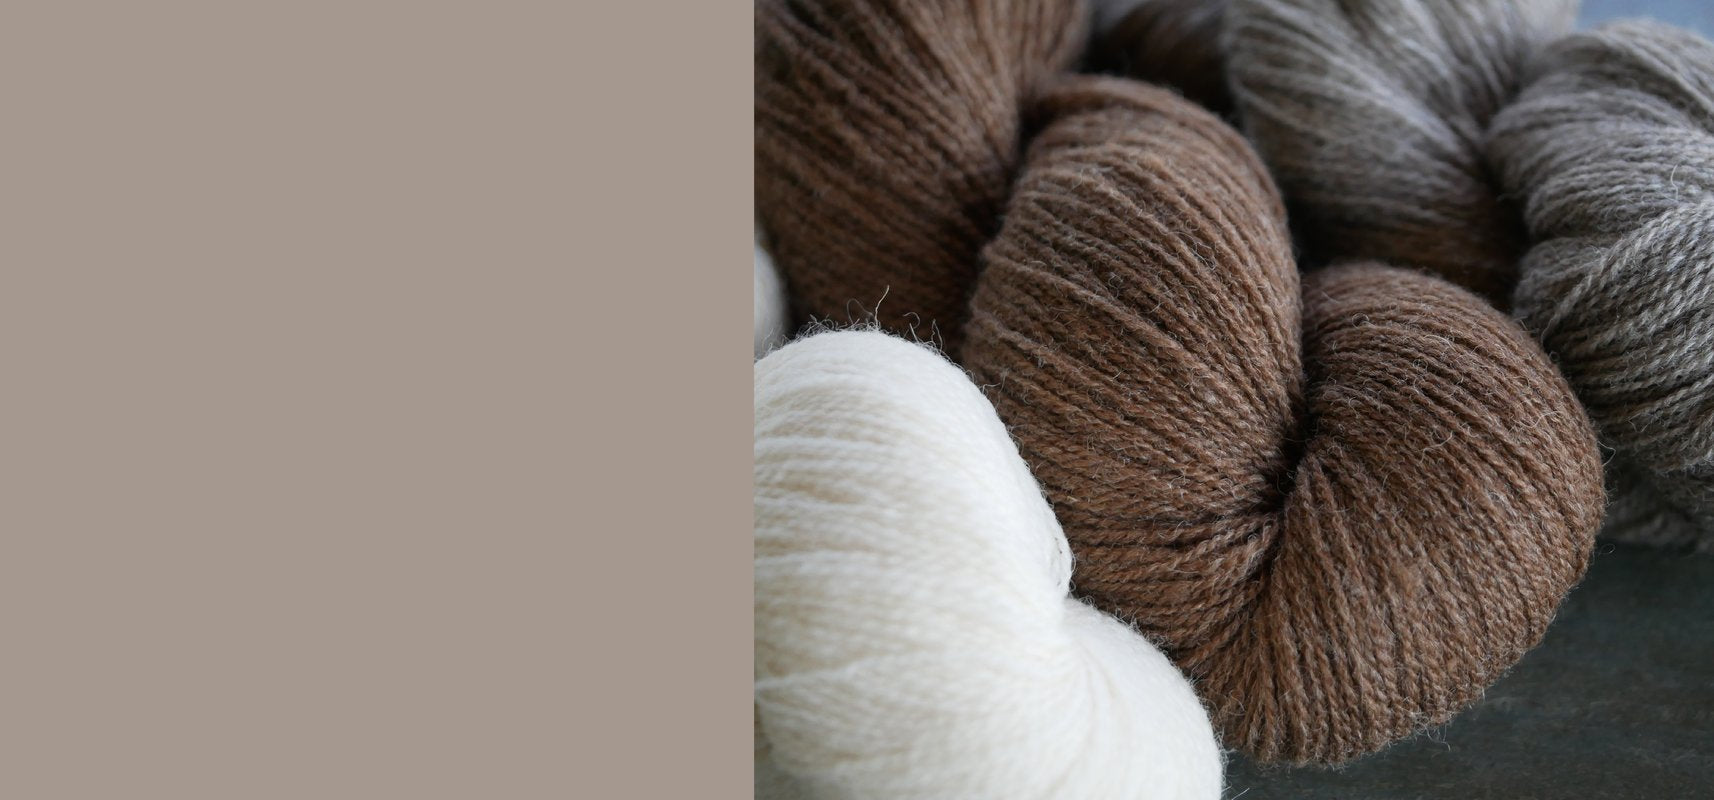 shetland fingering yarn in moorit, emsket and white